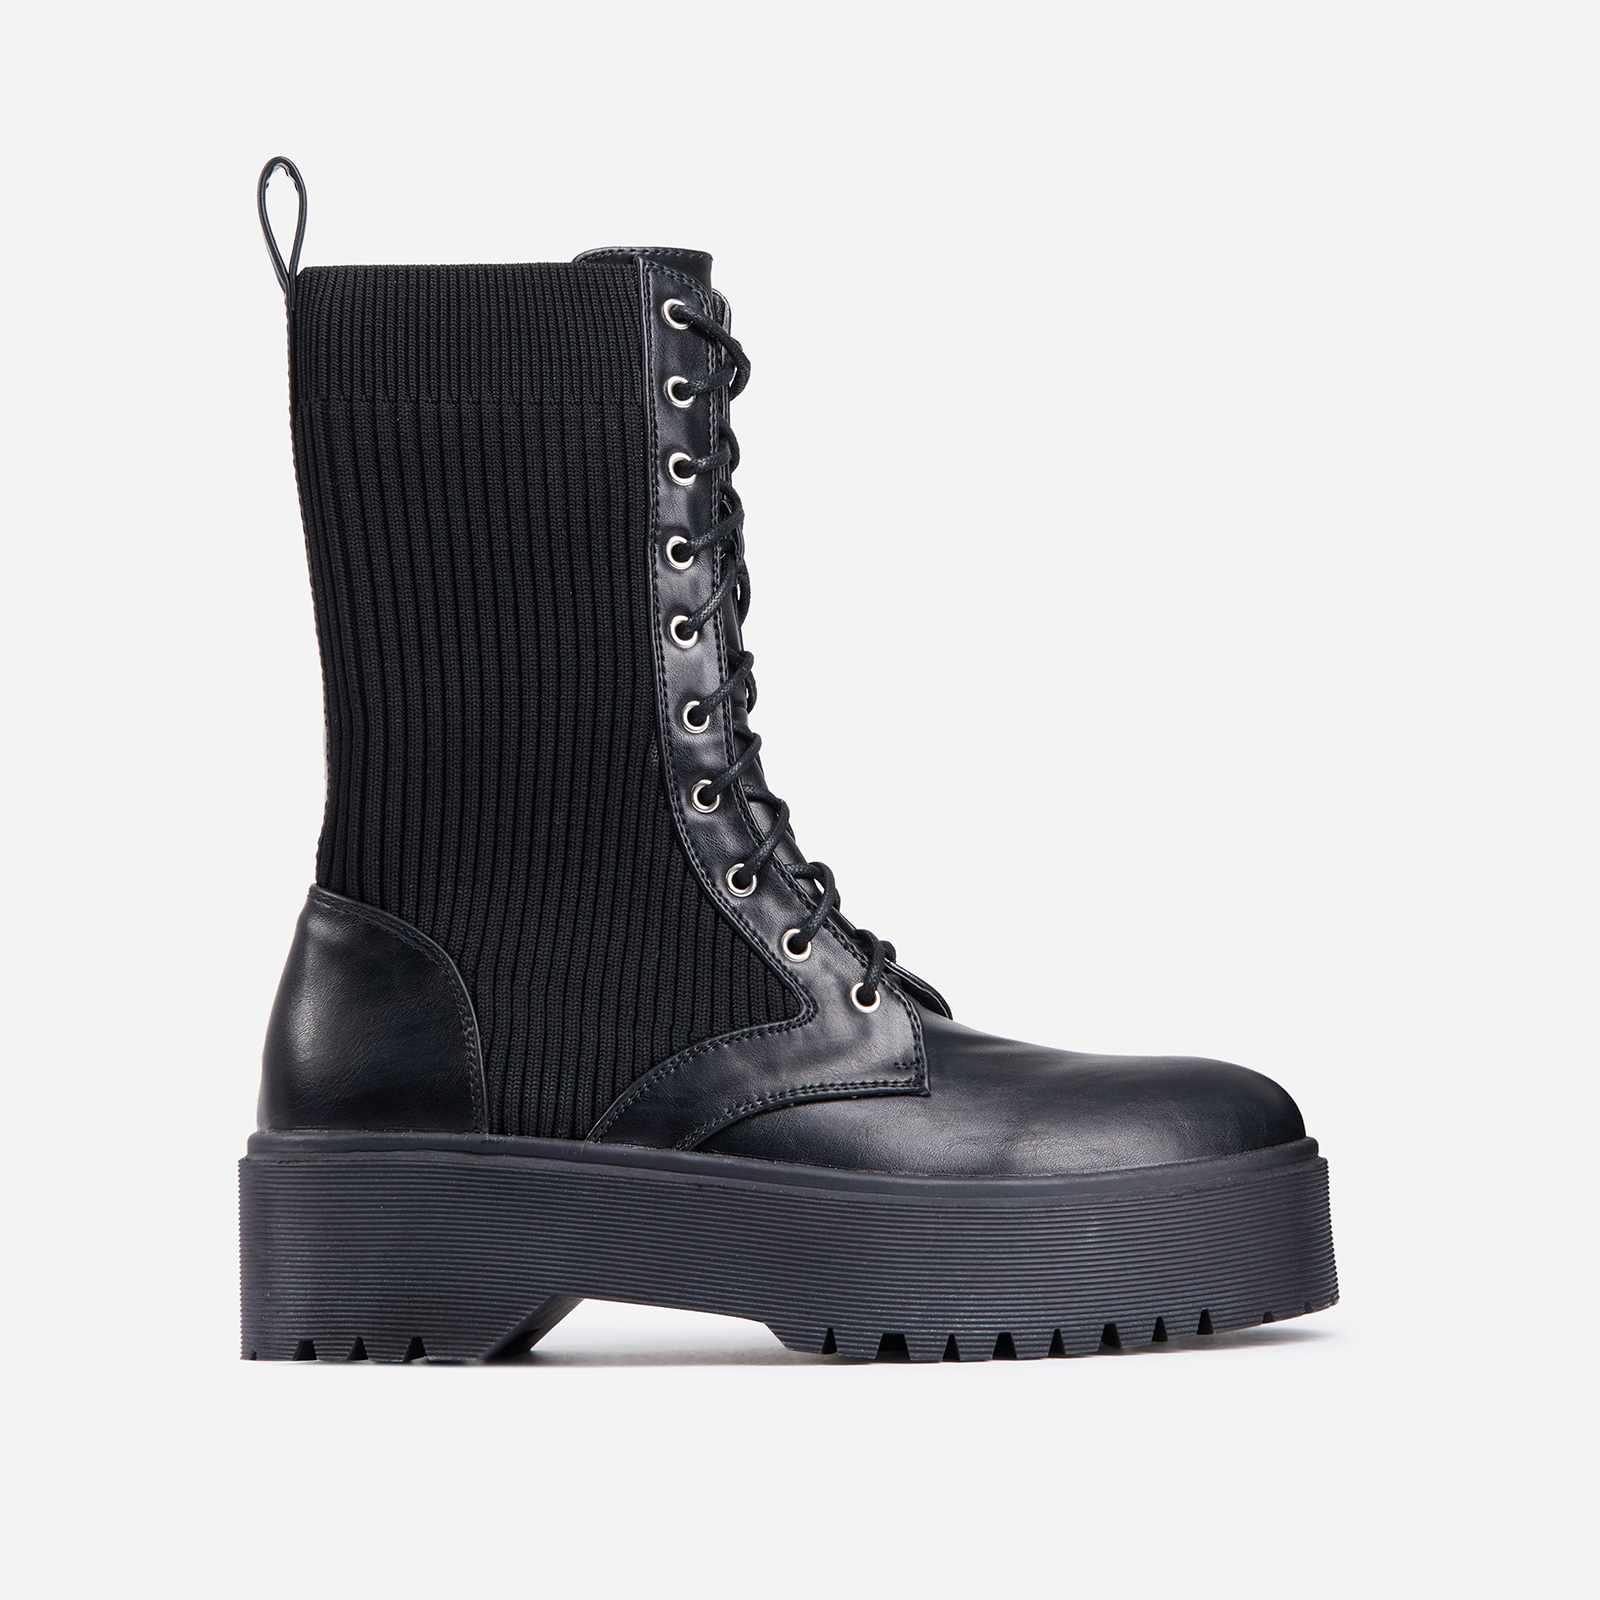 Soulmate Ribbed Lace Up Ankle Biker Boot In Black Faux Leather